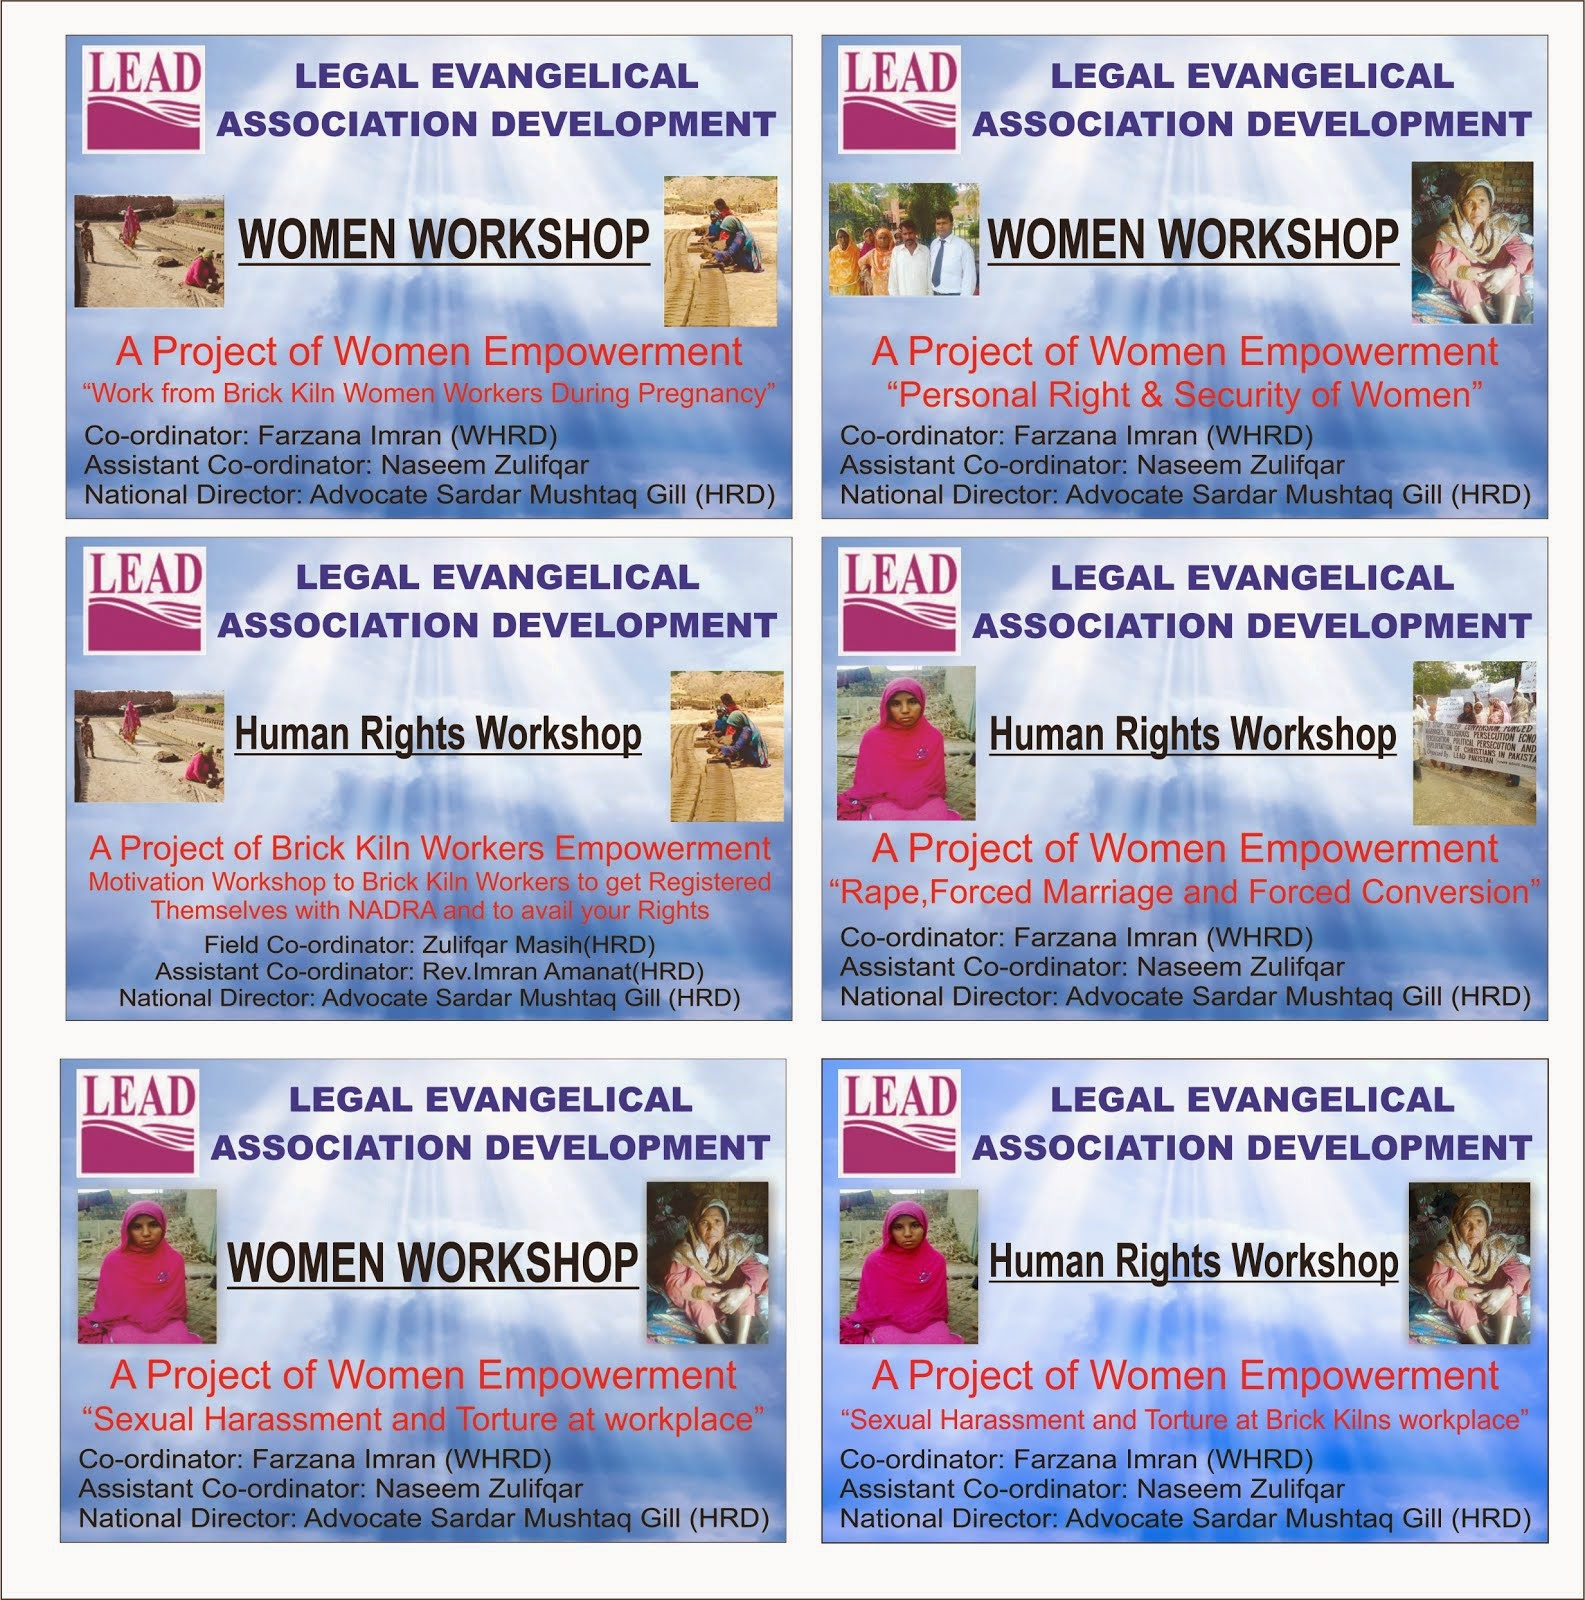 LEAD Women Empowerment Project 2014-2016